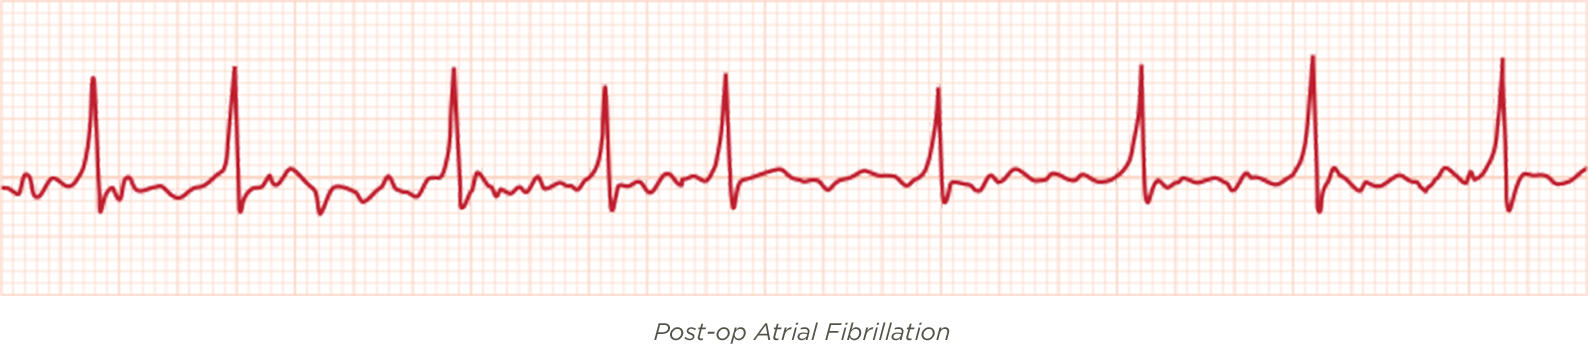 Post-op Atrial Fibrillation